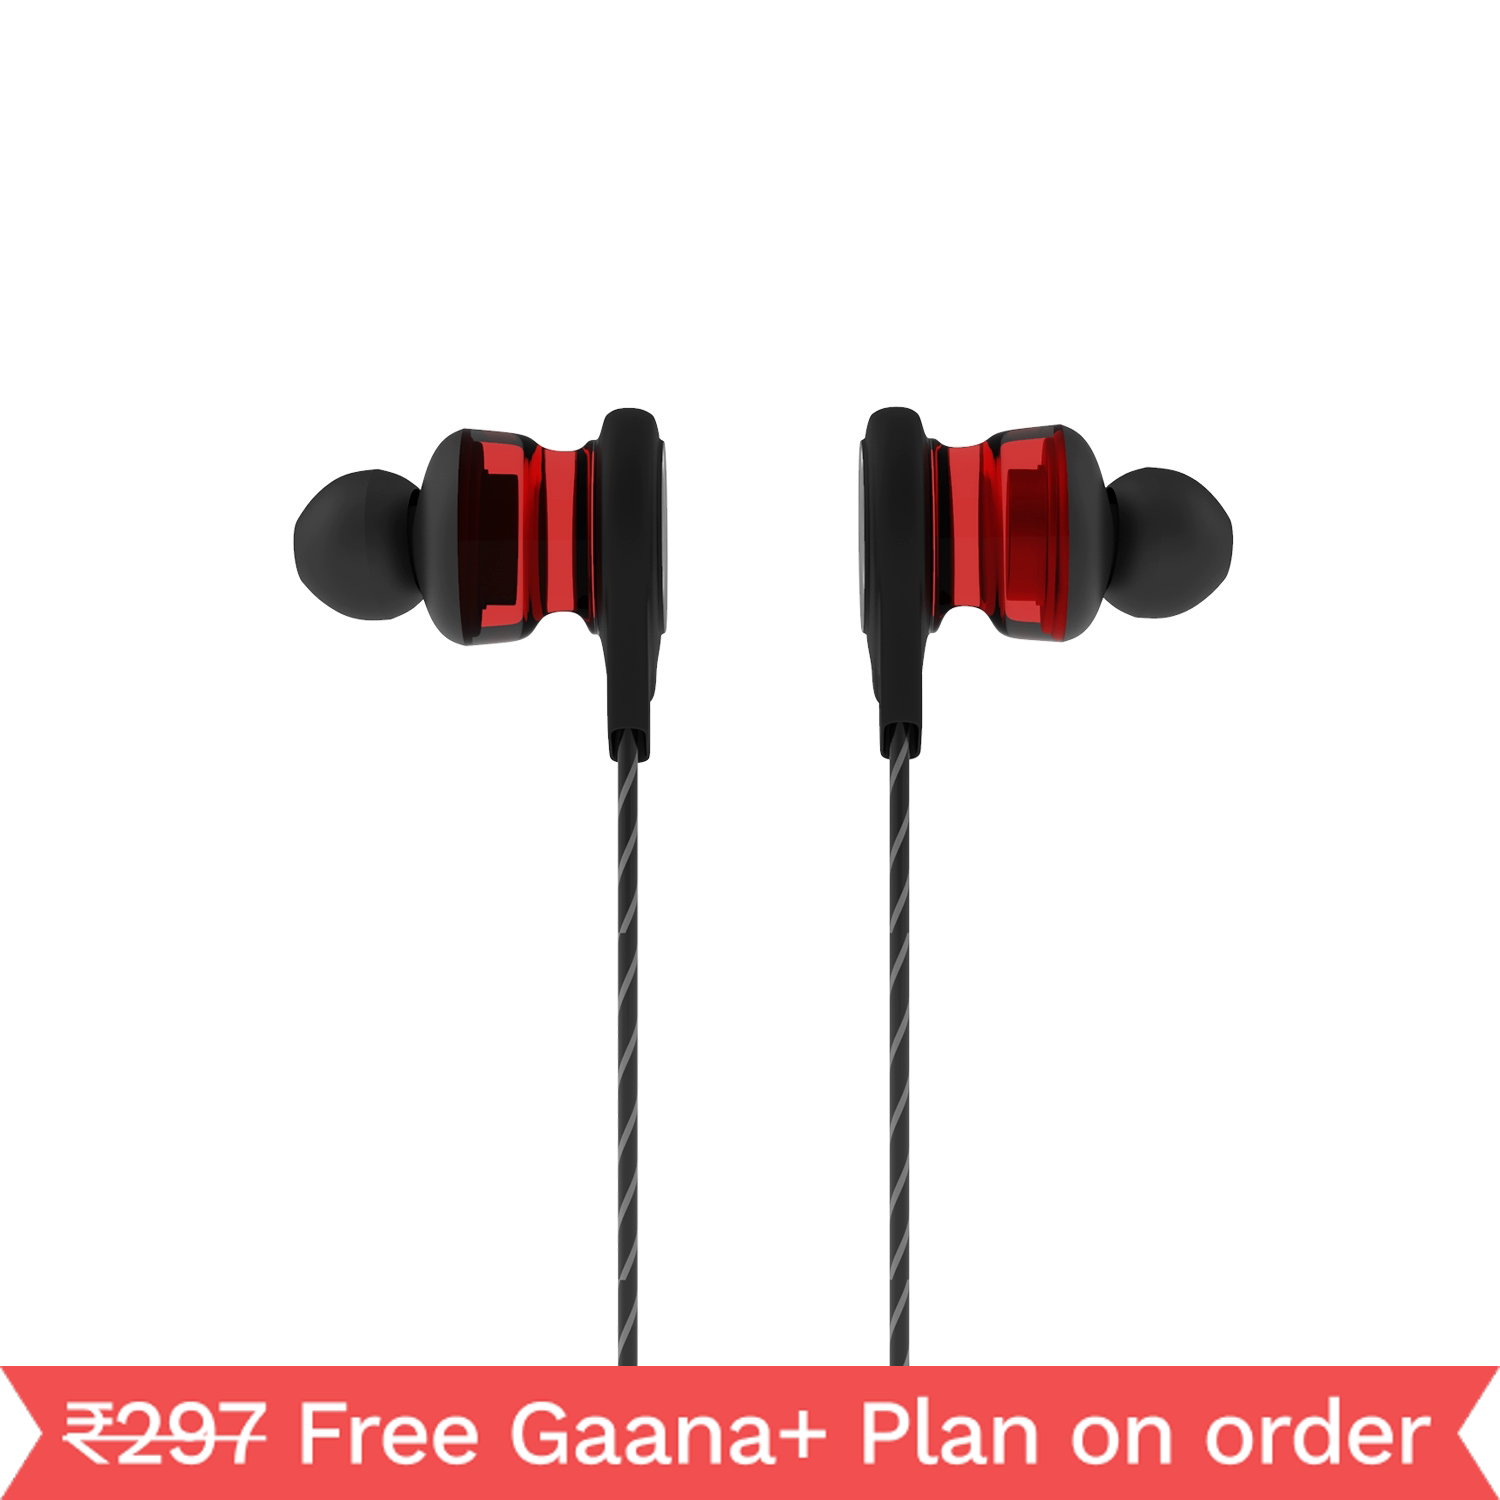 Corseca Scarlet Bassplus in-Ear Sporty Headphones with Integrated Mic and Volume Control (Maroon)